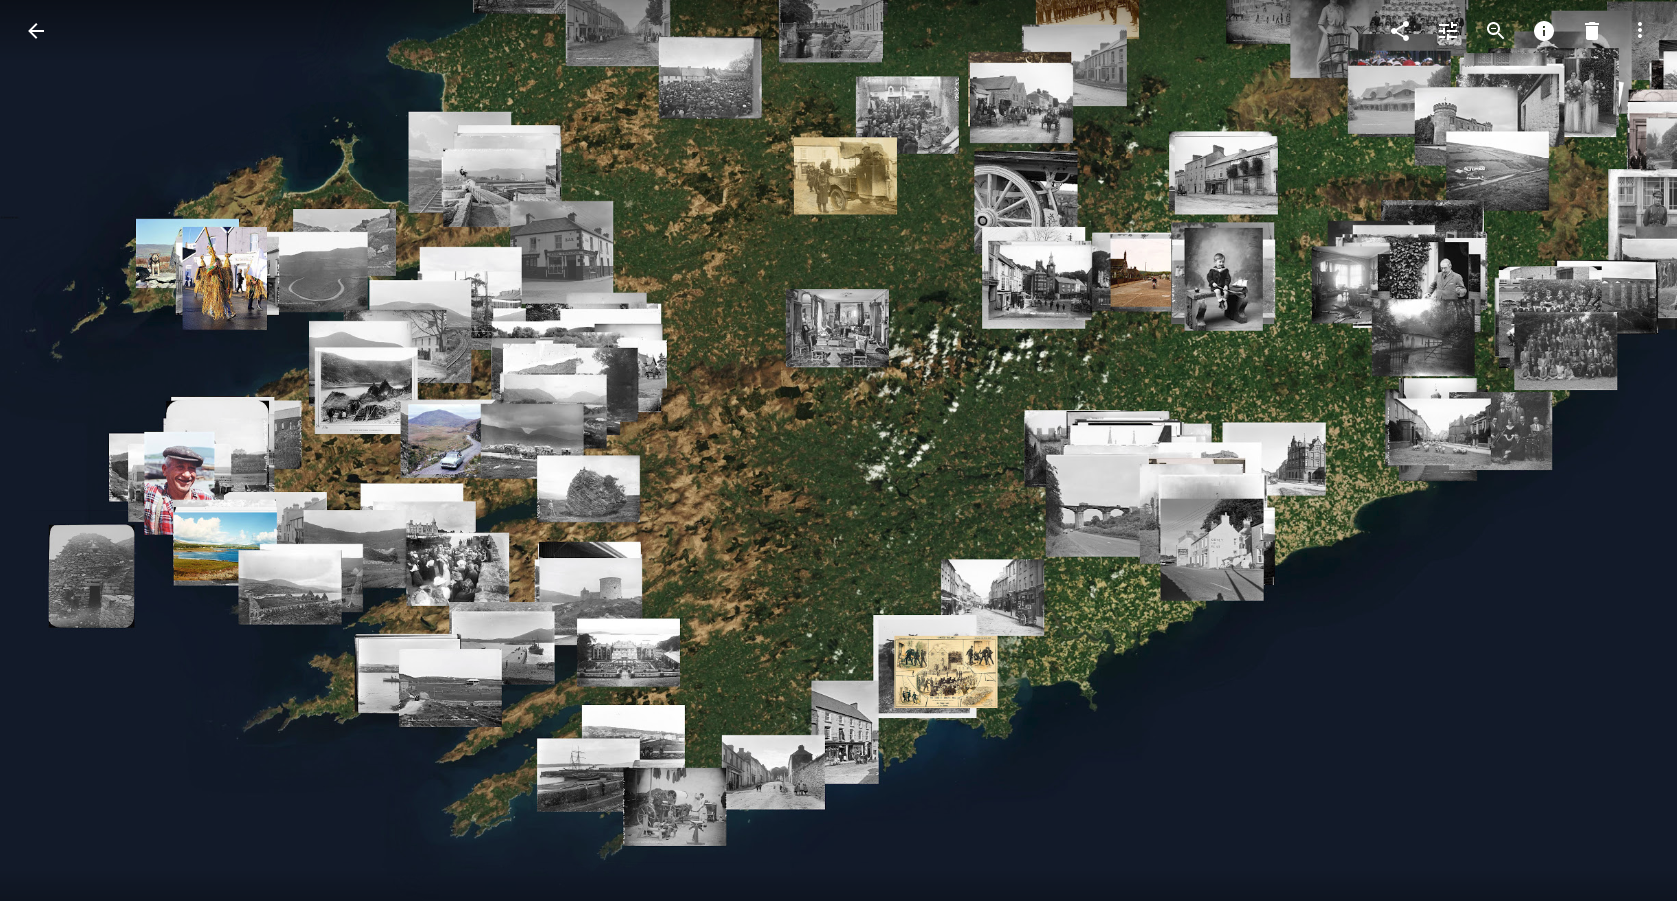 Map of National Library of Ireland images from Flickr Commons